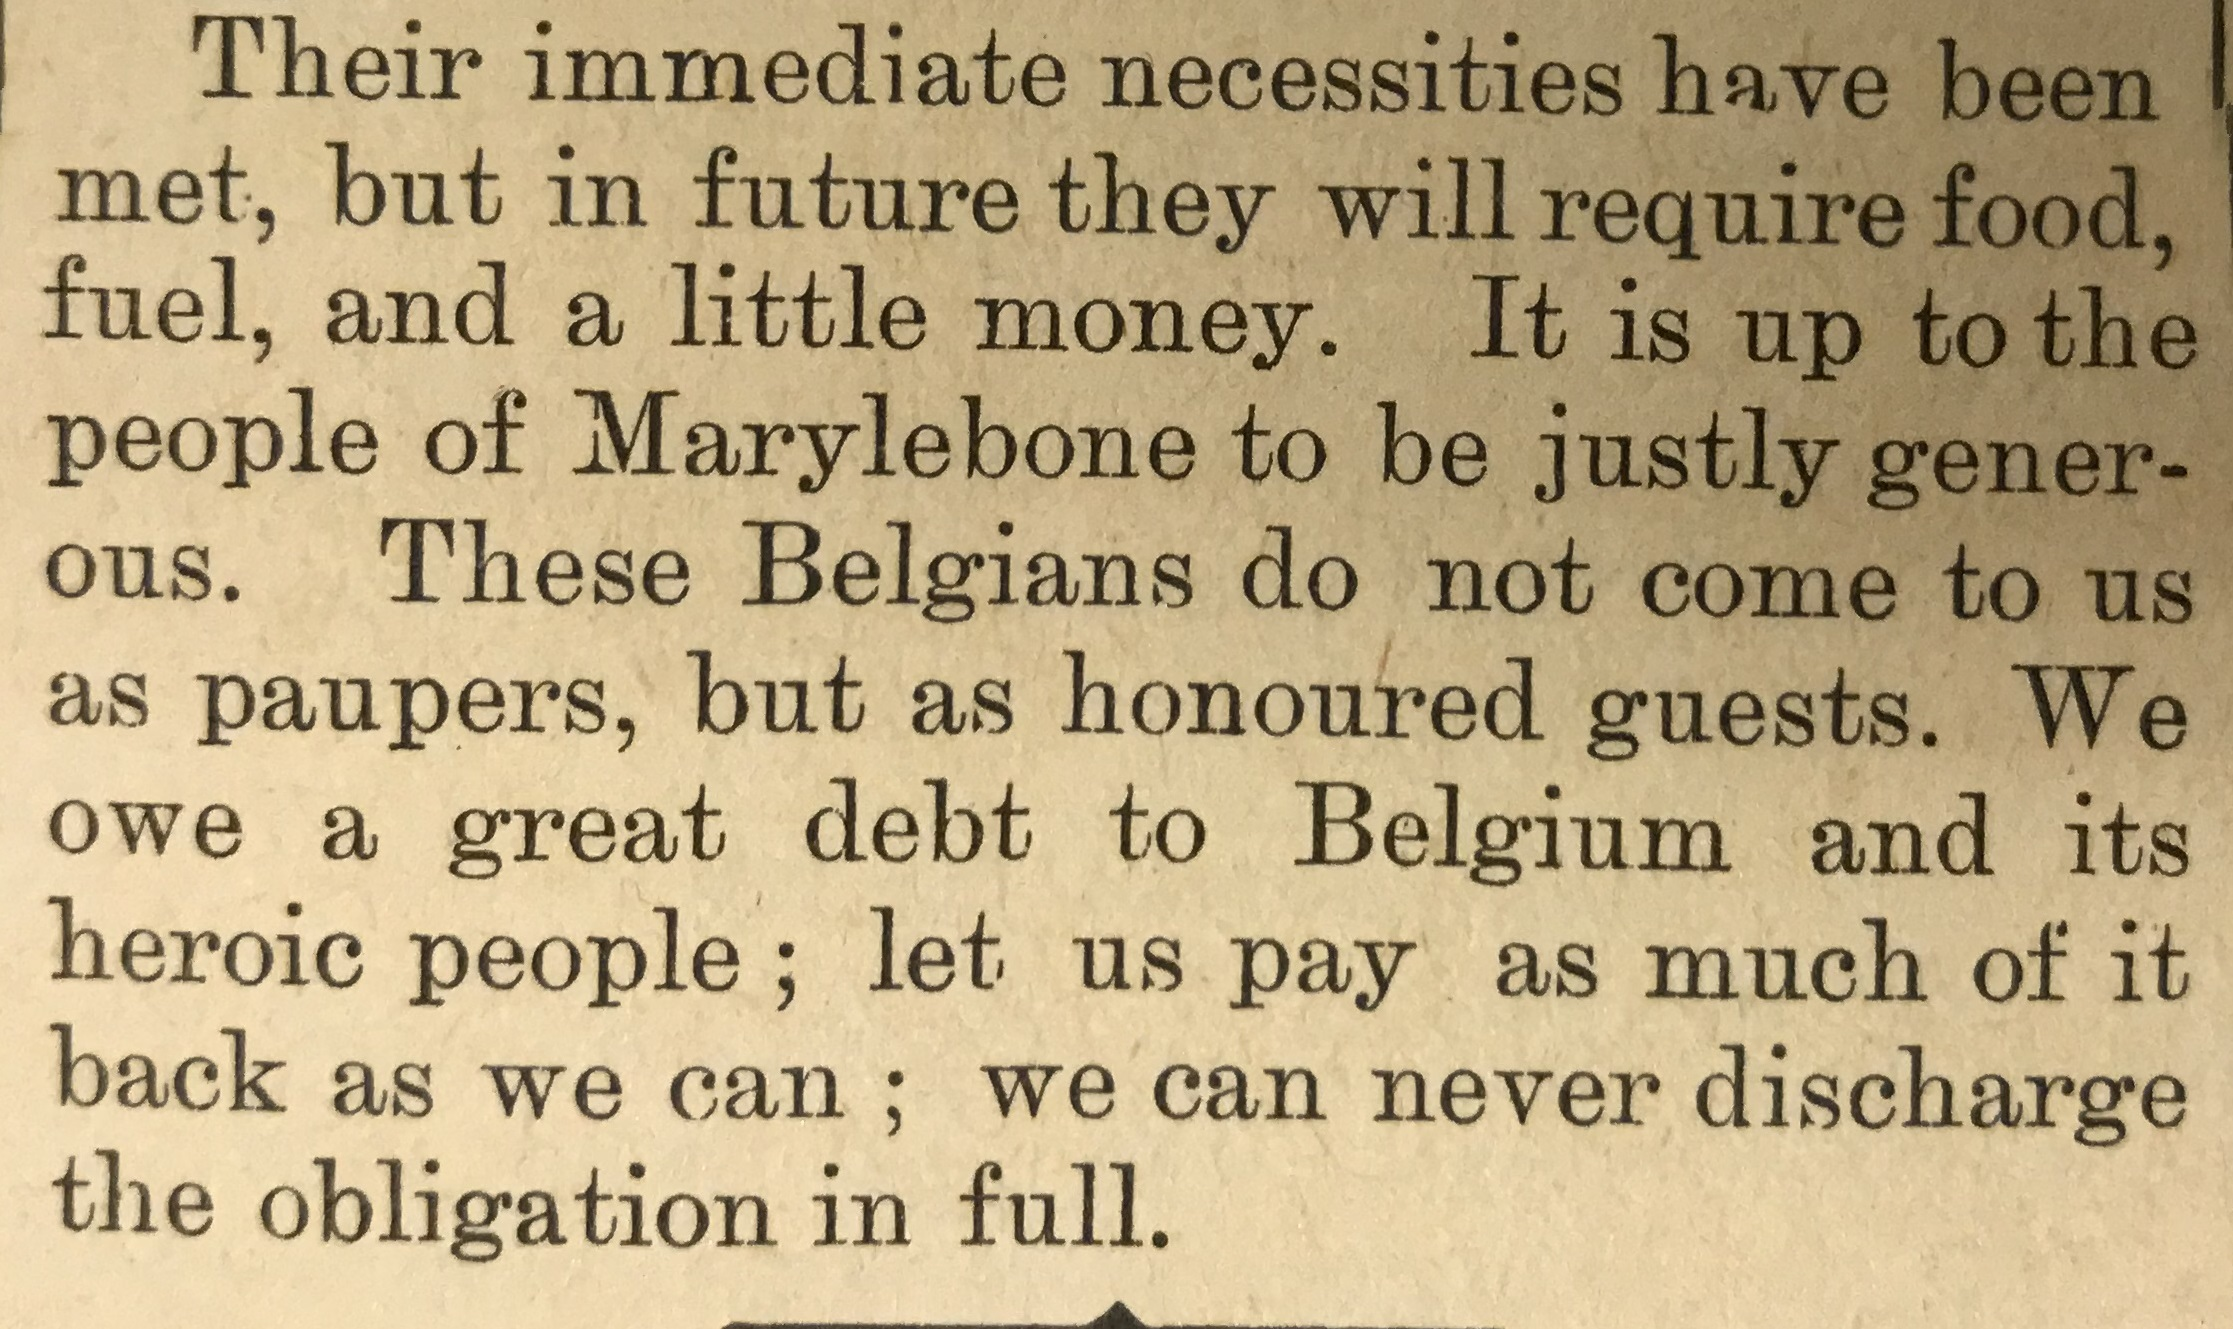 The Marylebone Record commenting on the opening of 82 Crawford Street to refugees.